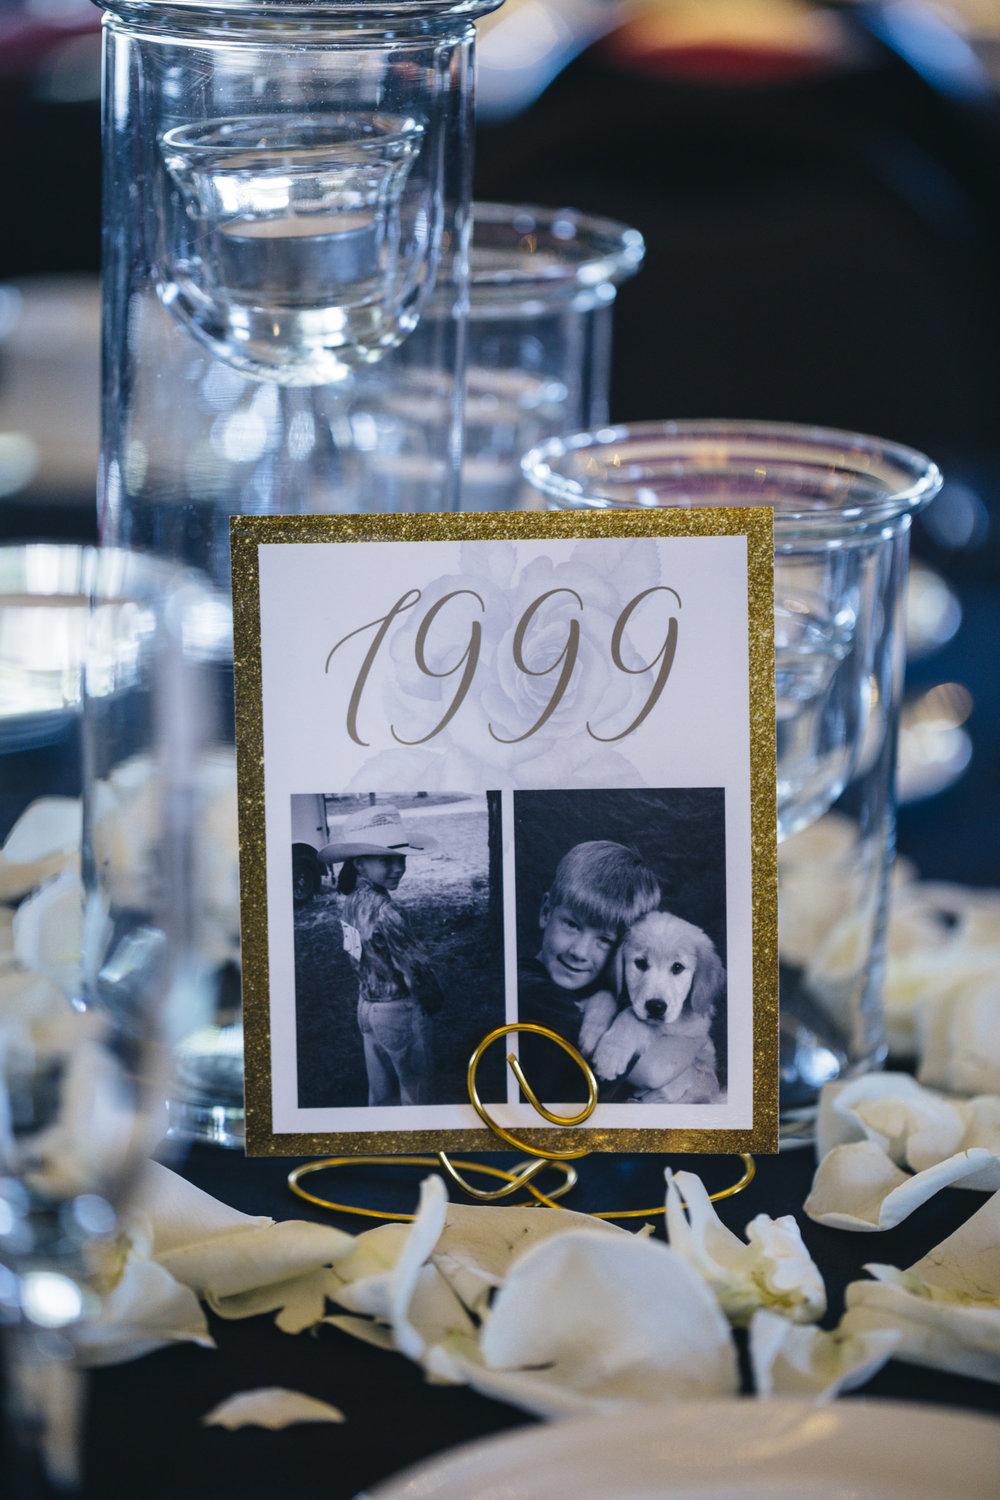 Table centerpieces with years and pictures of the bride and groom throughout their childhood